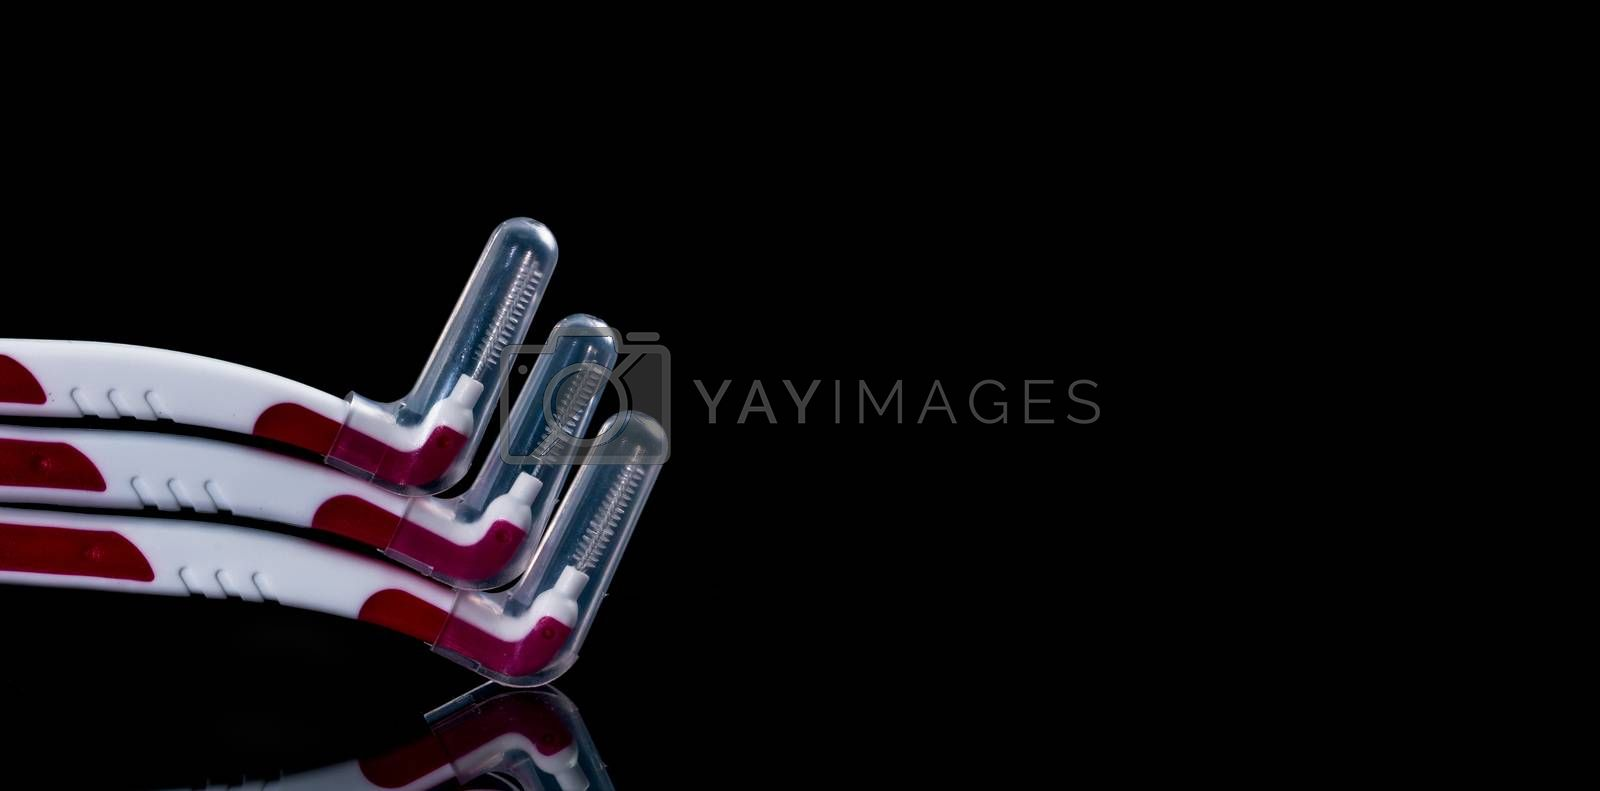 Three inter-dental brush with cover isolated on black background with copy space for text. Dental care concept. Equipment for get rid of food stuck in teeth